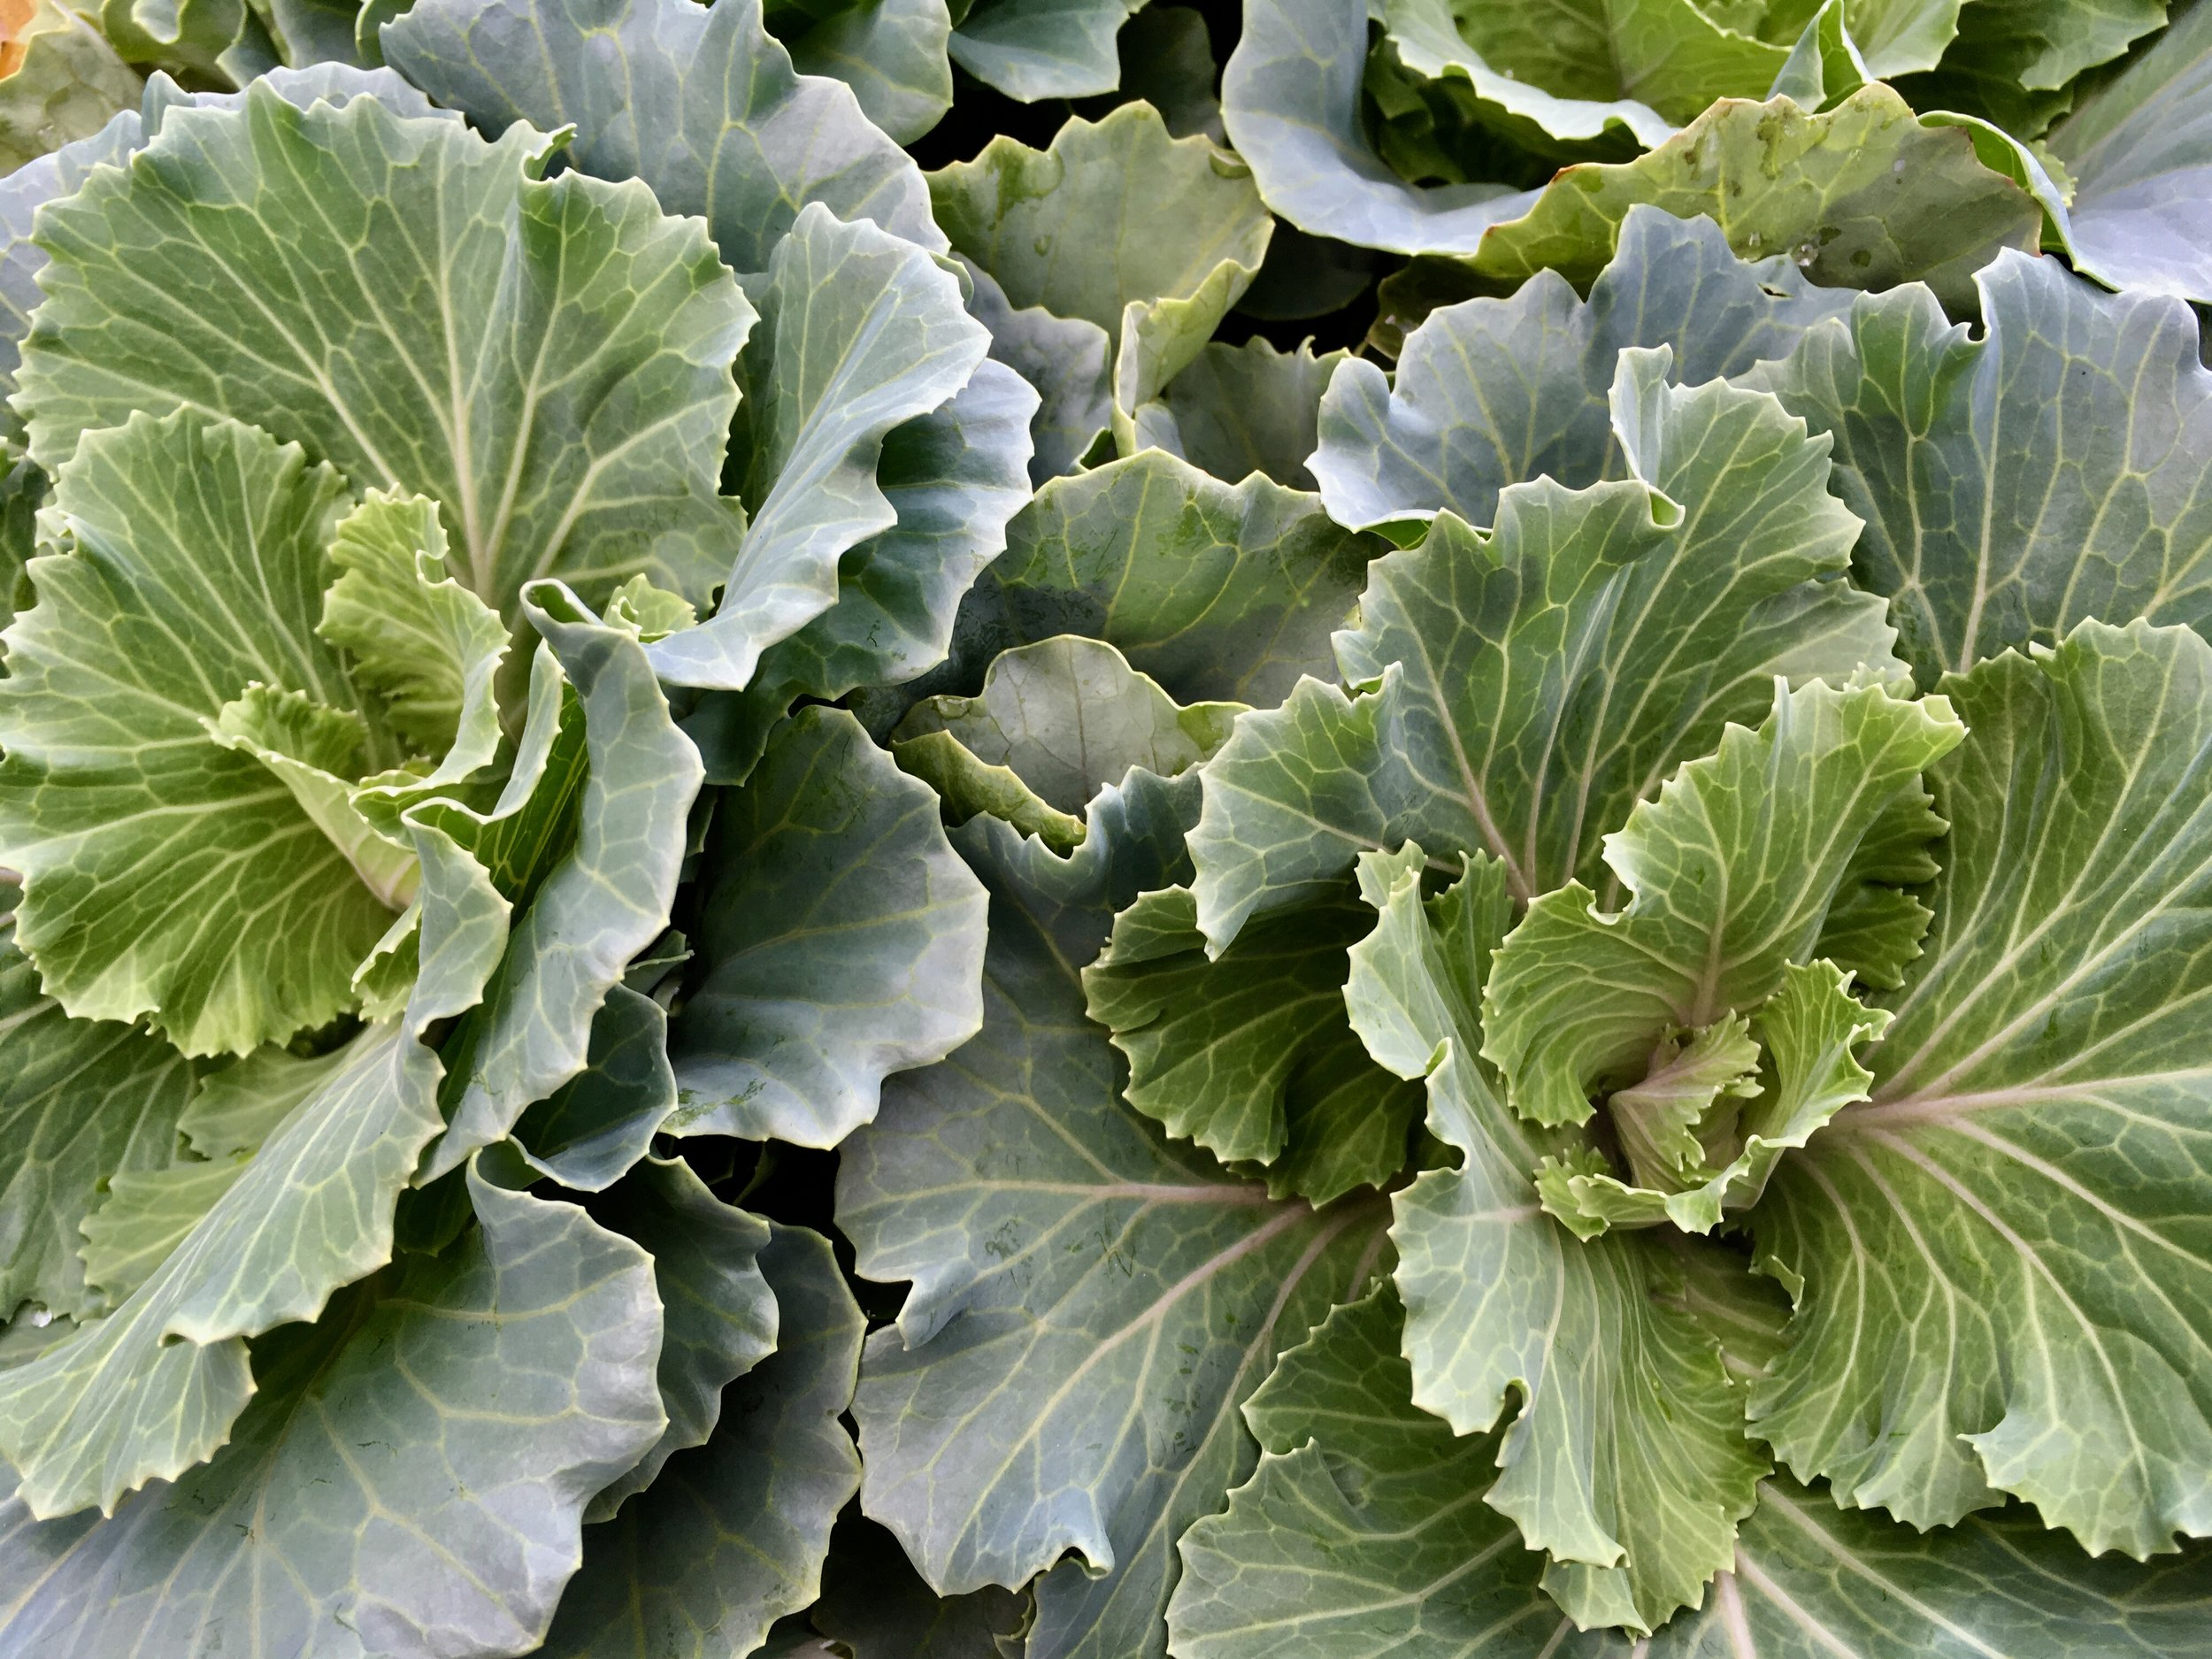 floweringcabbage.jpg